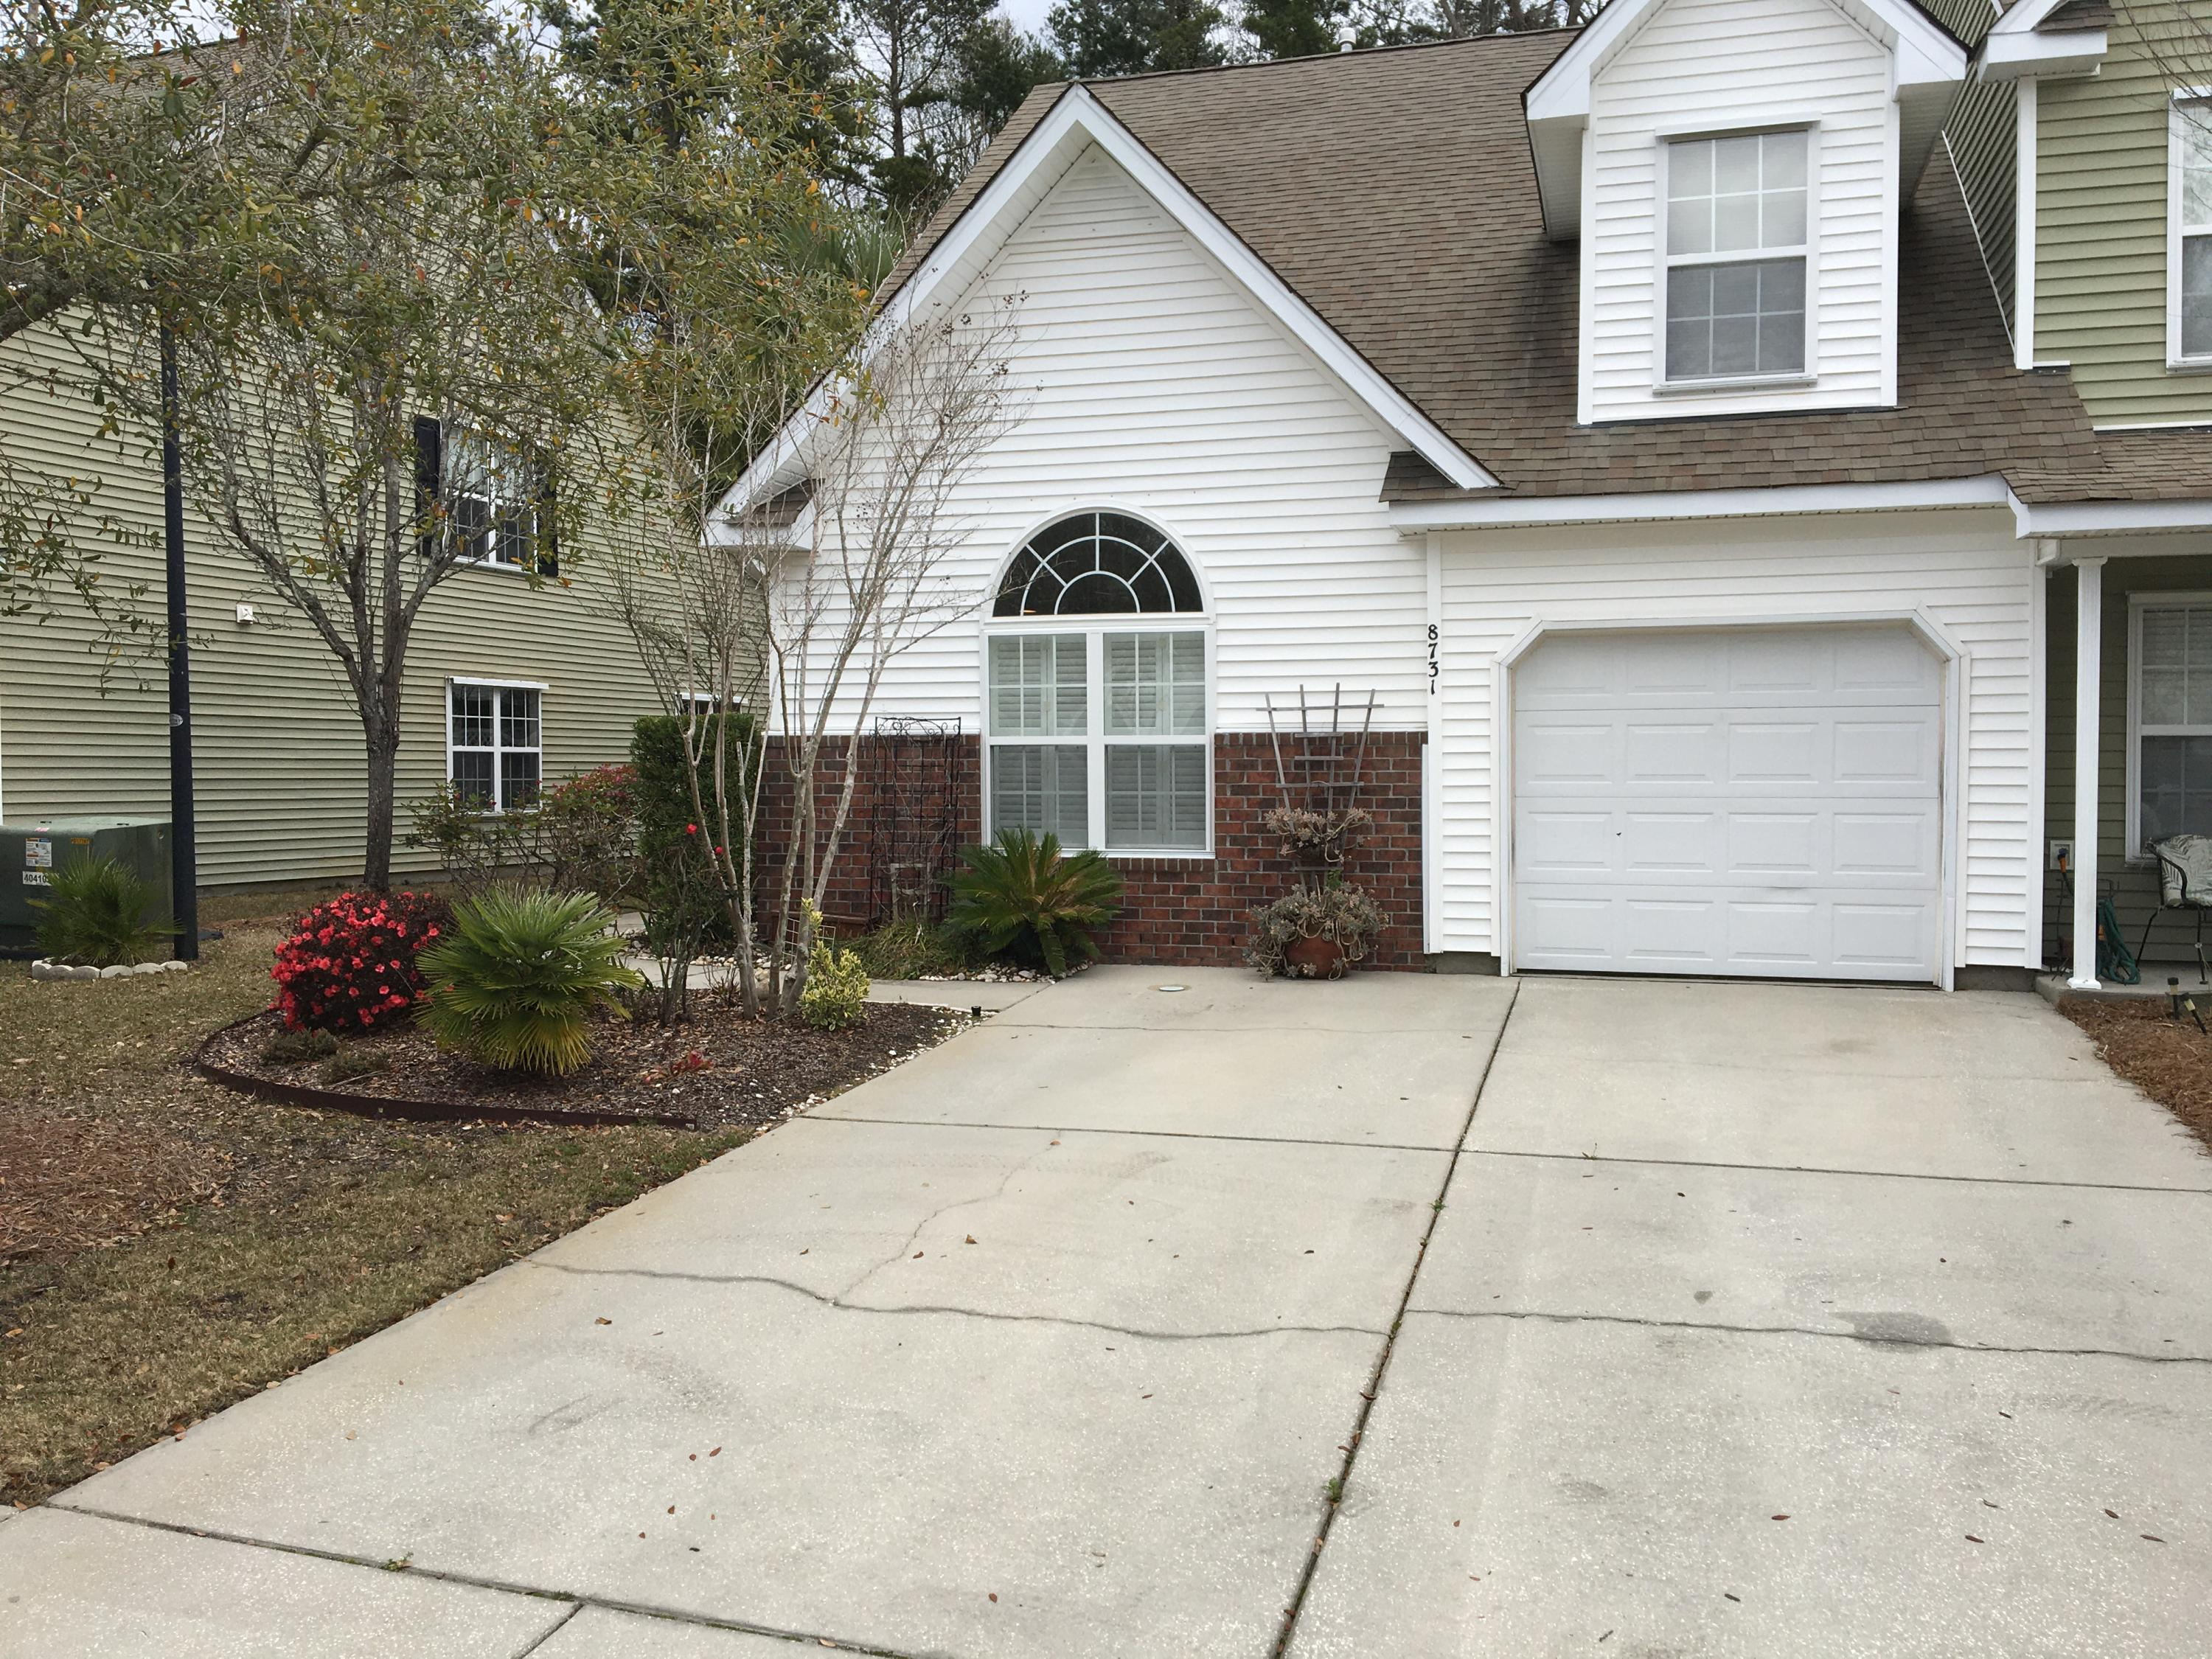 Coosaw Commons Homes For Sale - 8731 Grassy Oak Trail, North Charleston, SC - 29